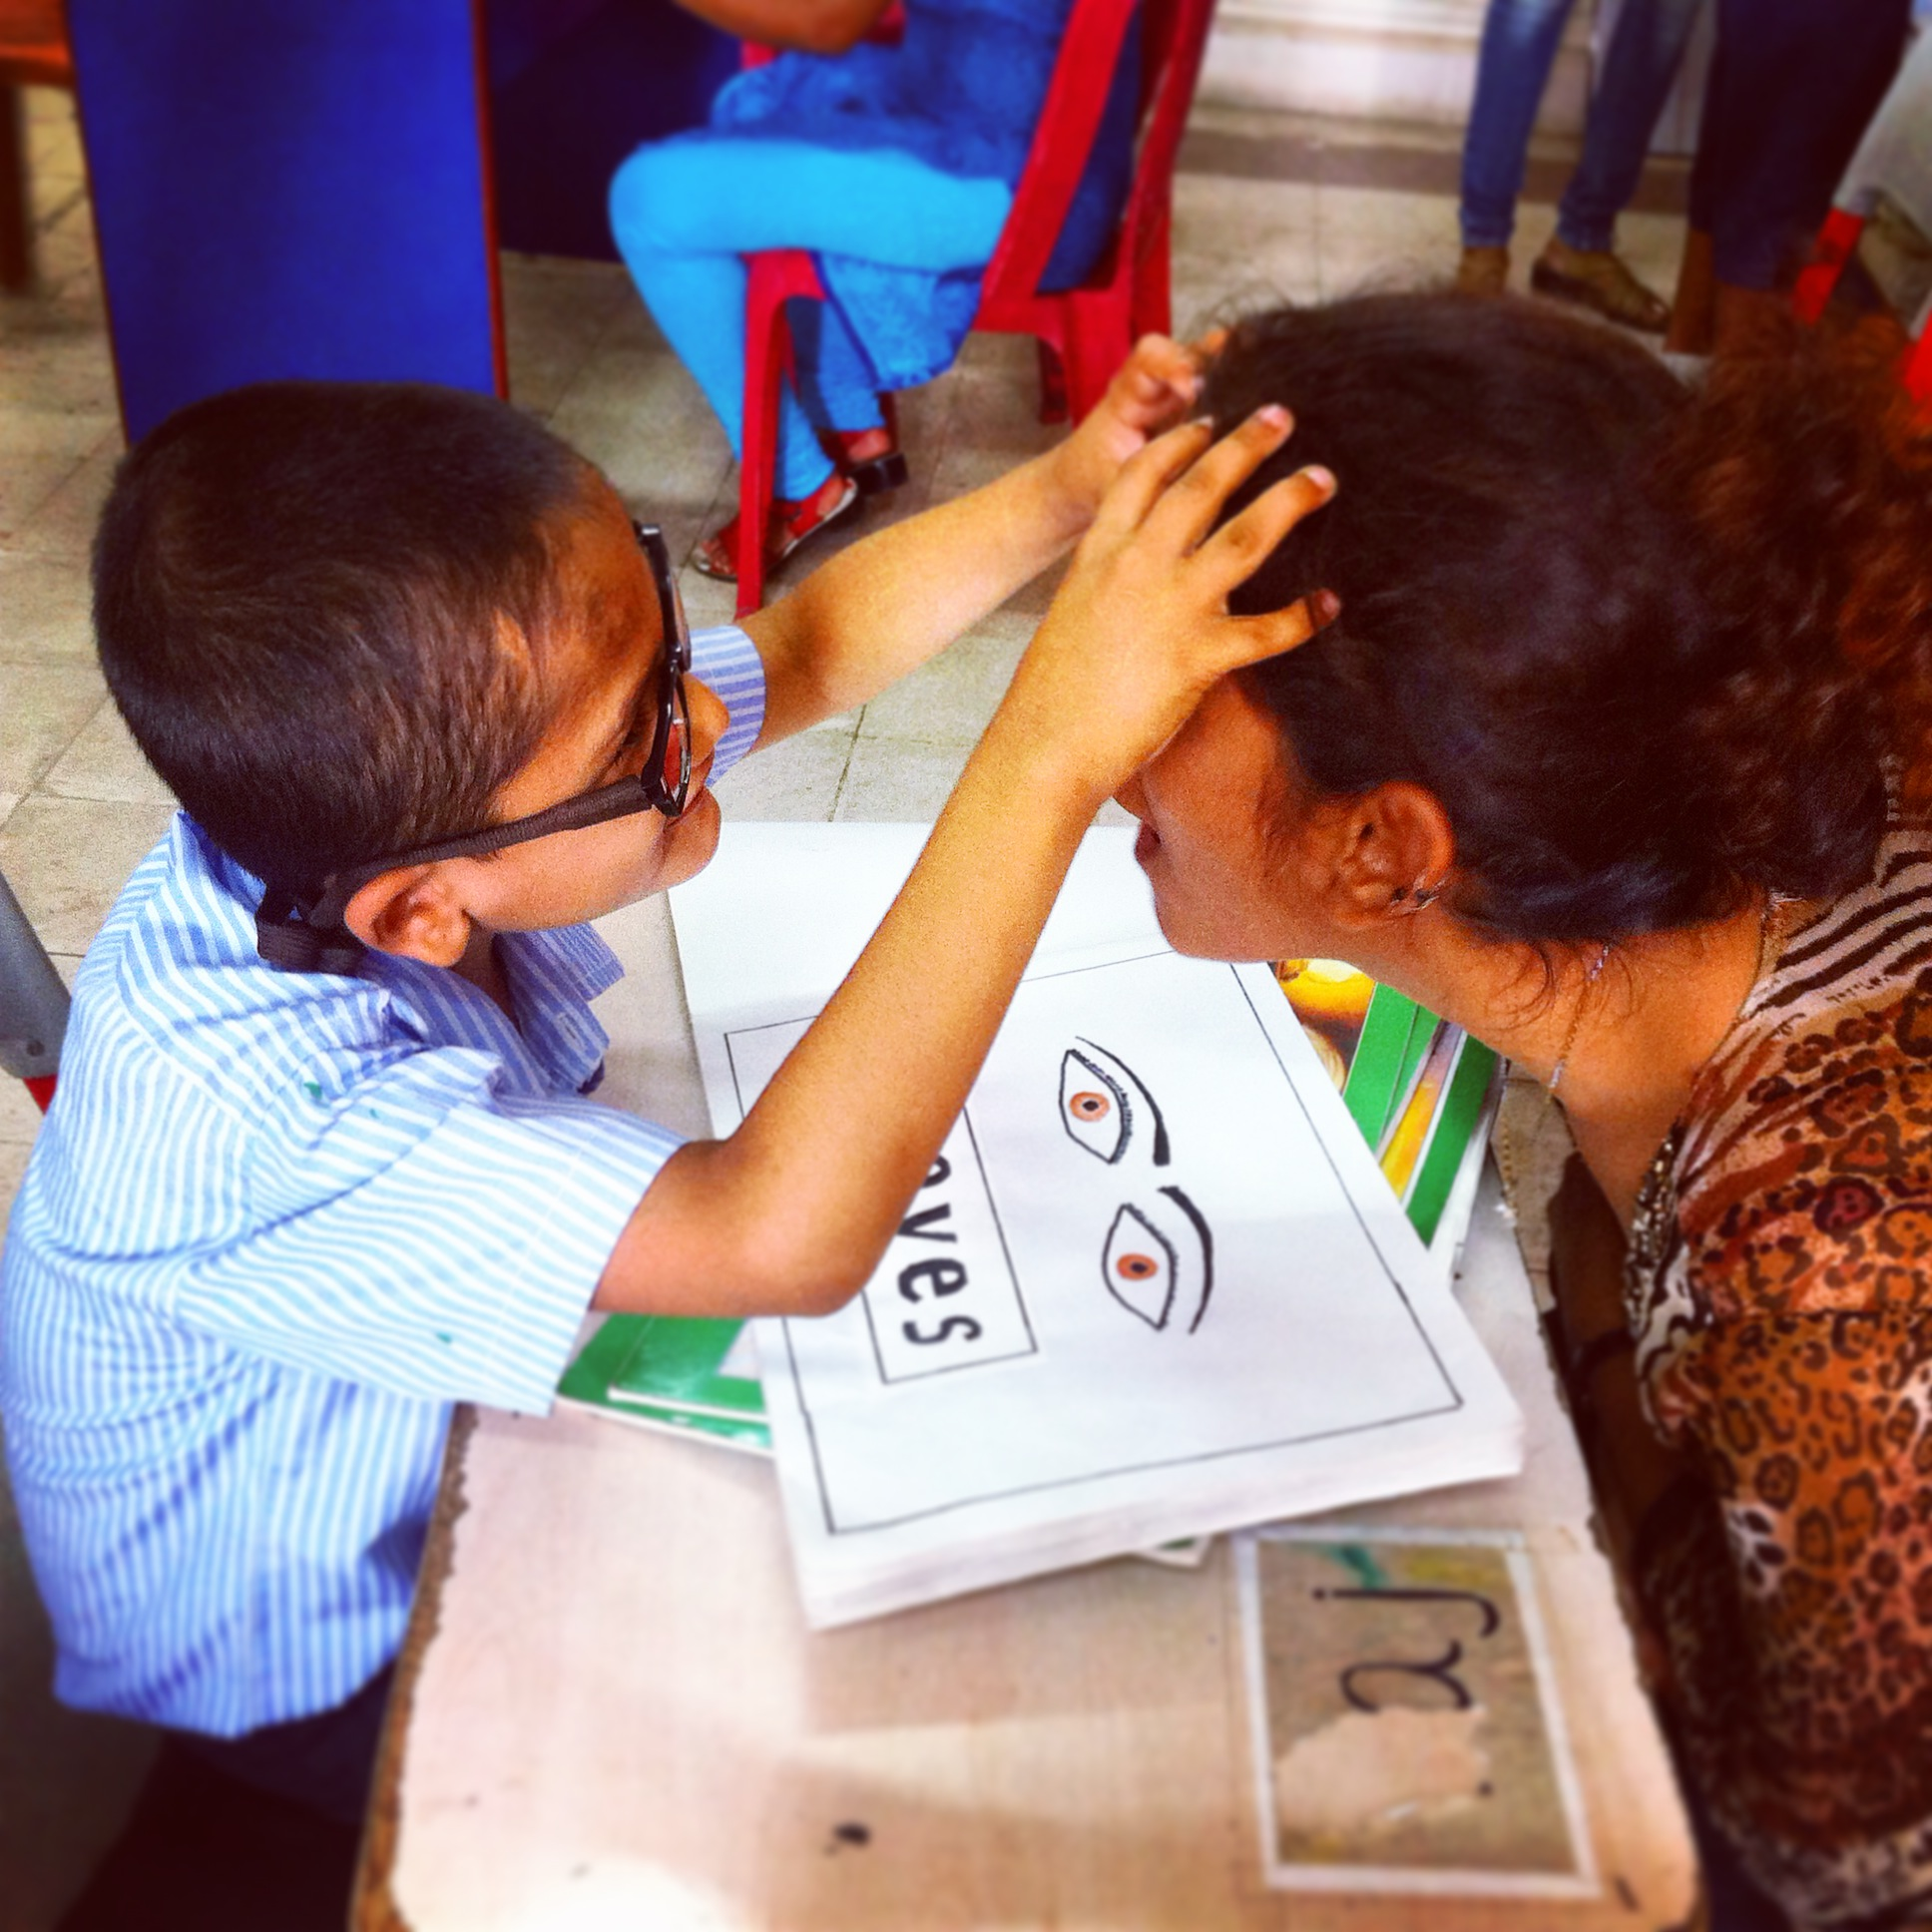 Teacher Speak: Could Your Child Have A Disability? | Leher NGO in India | Child Rights Organization